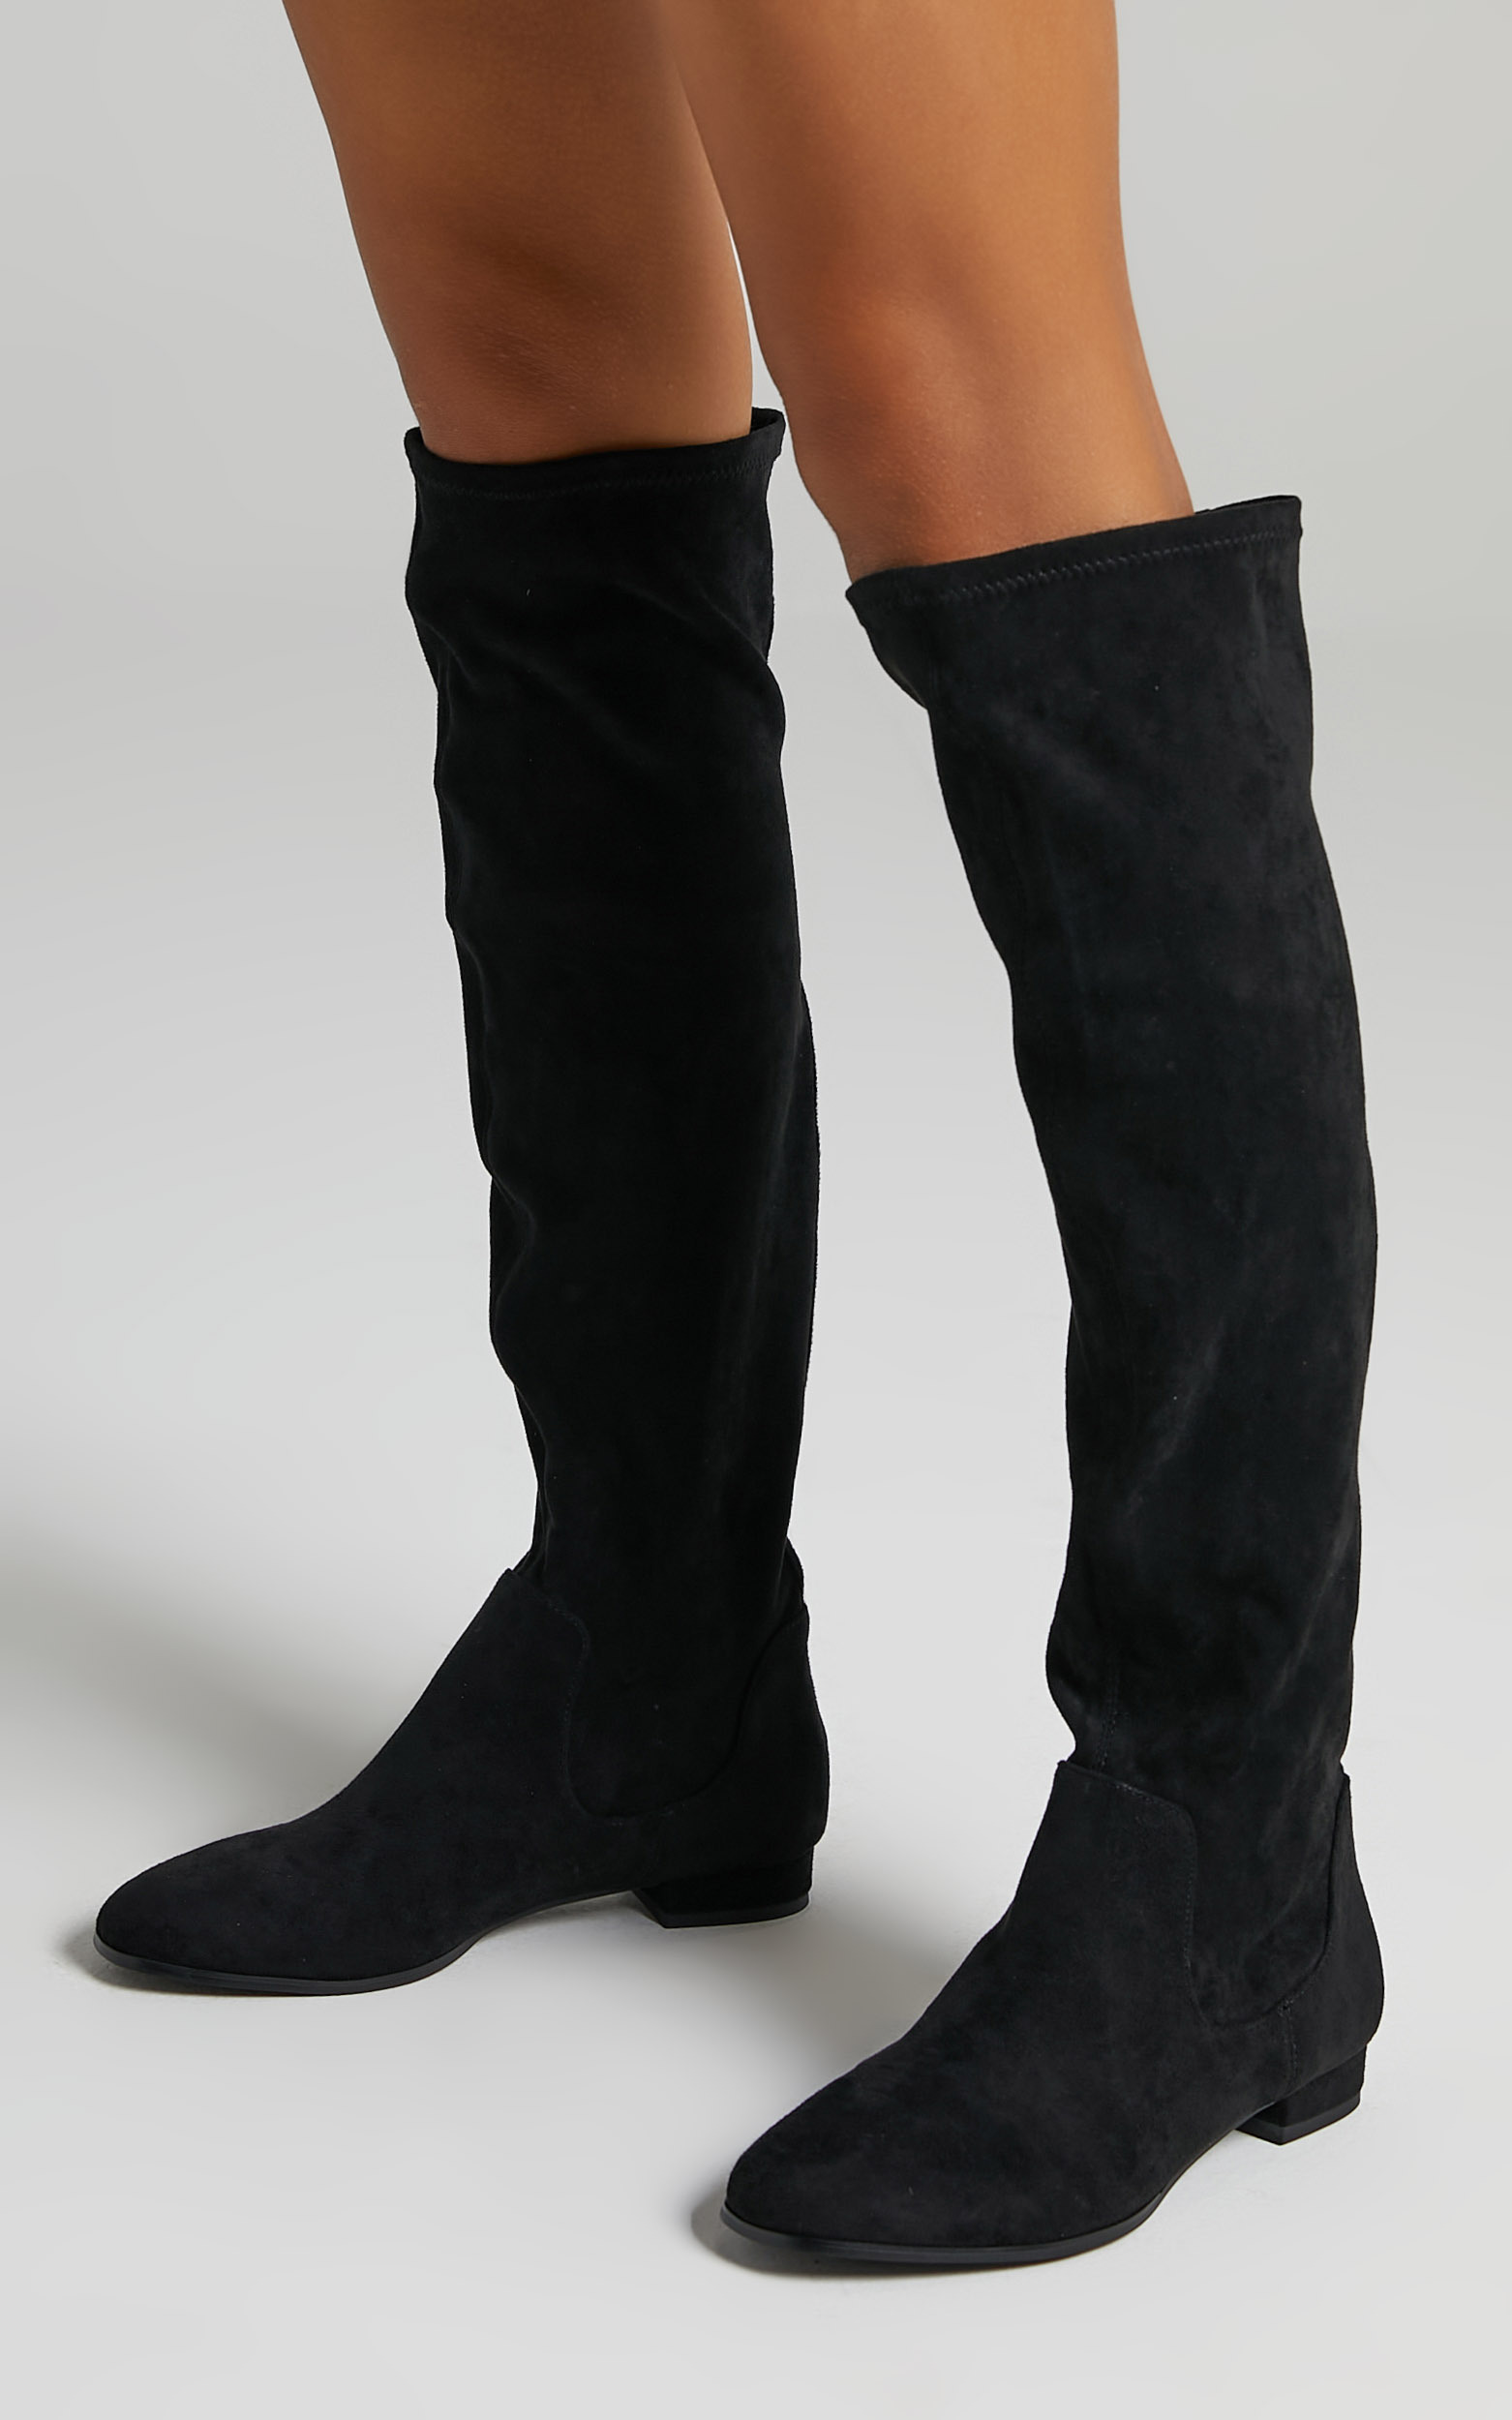 Therapy - Huxley Boots in Black - 05, BLK1, hi-res image number null